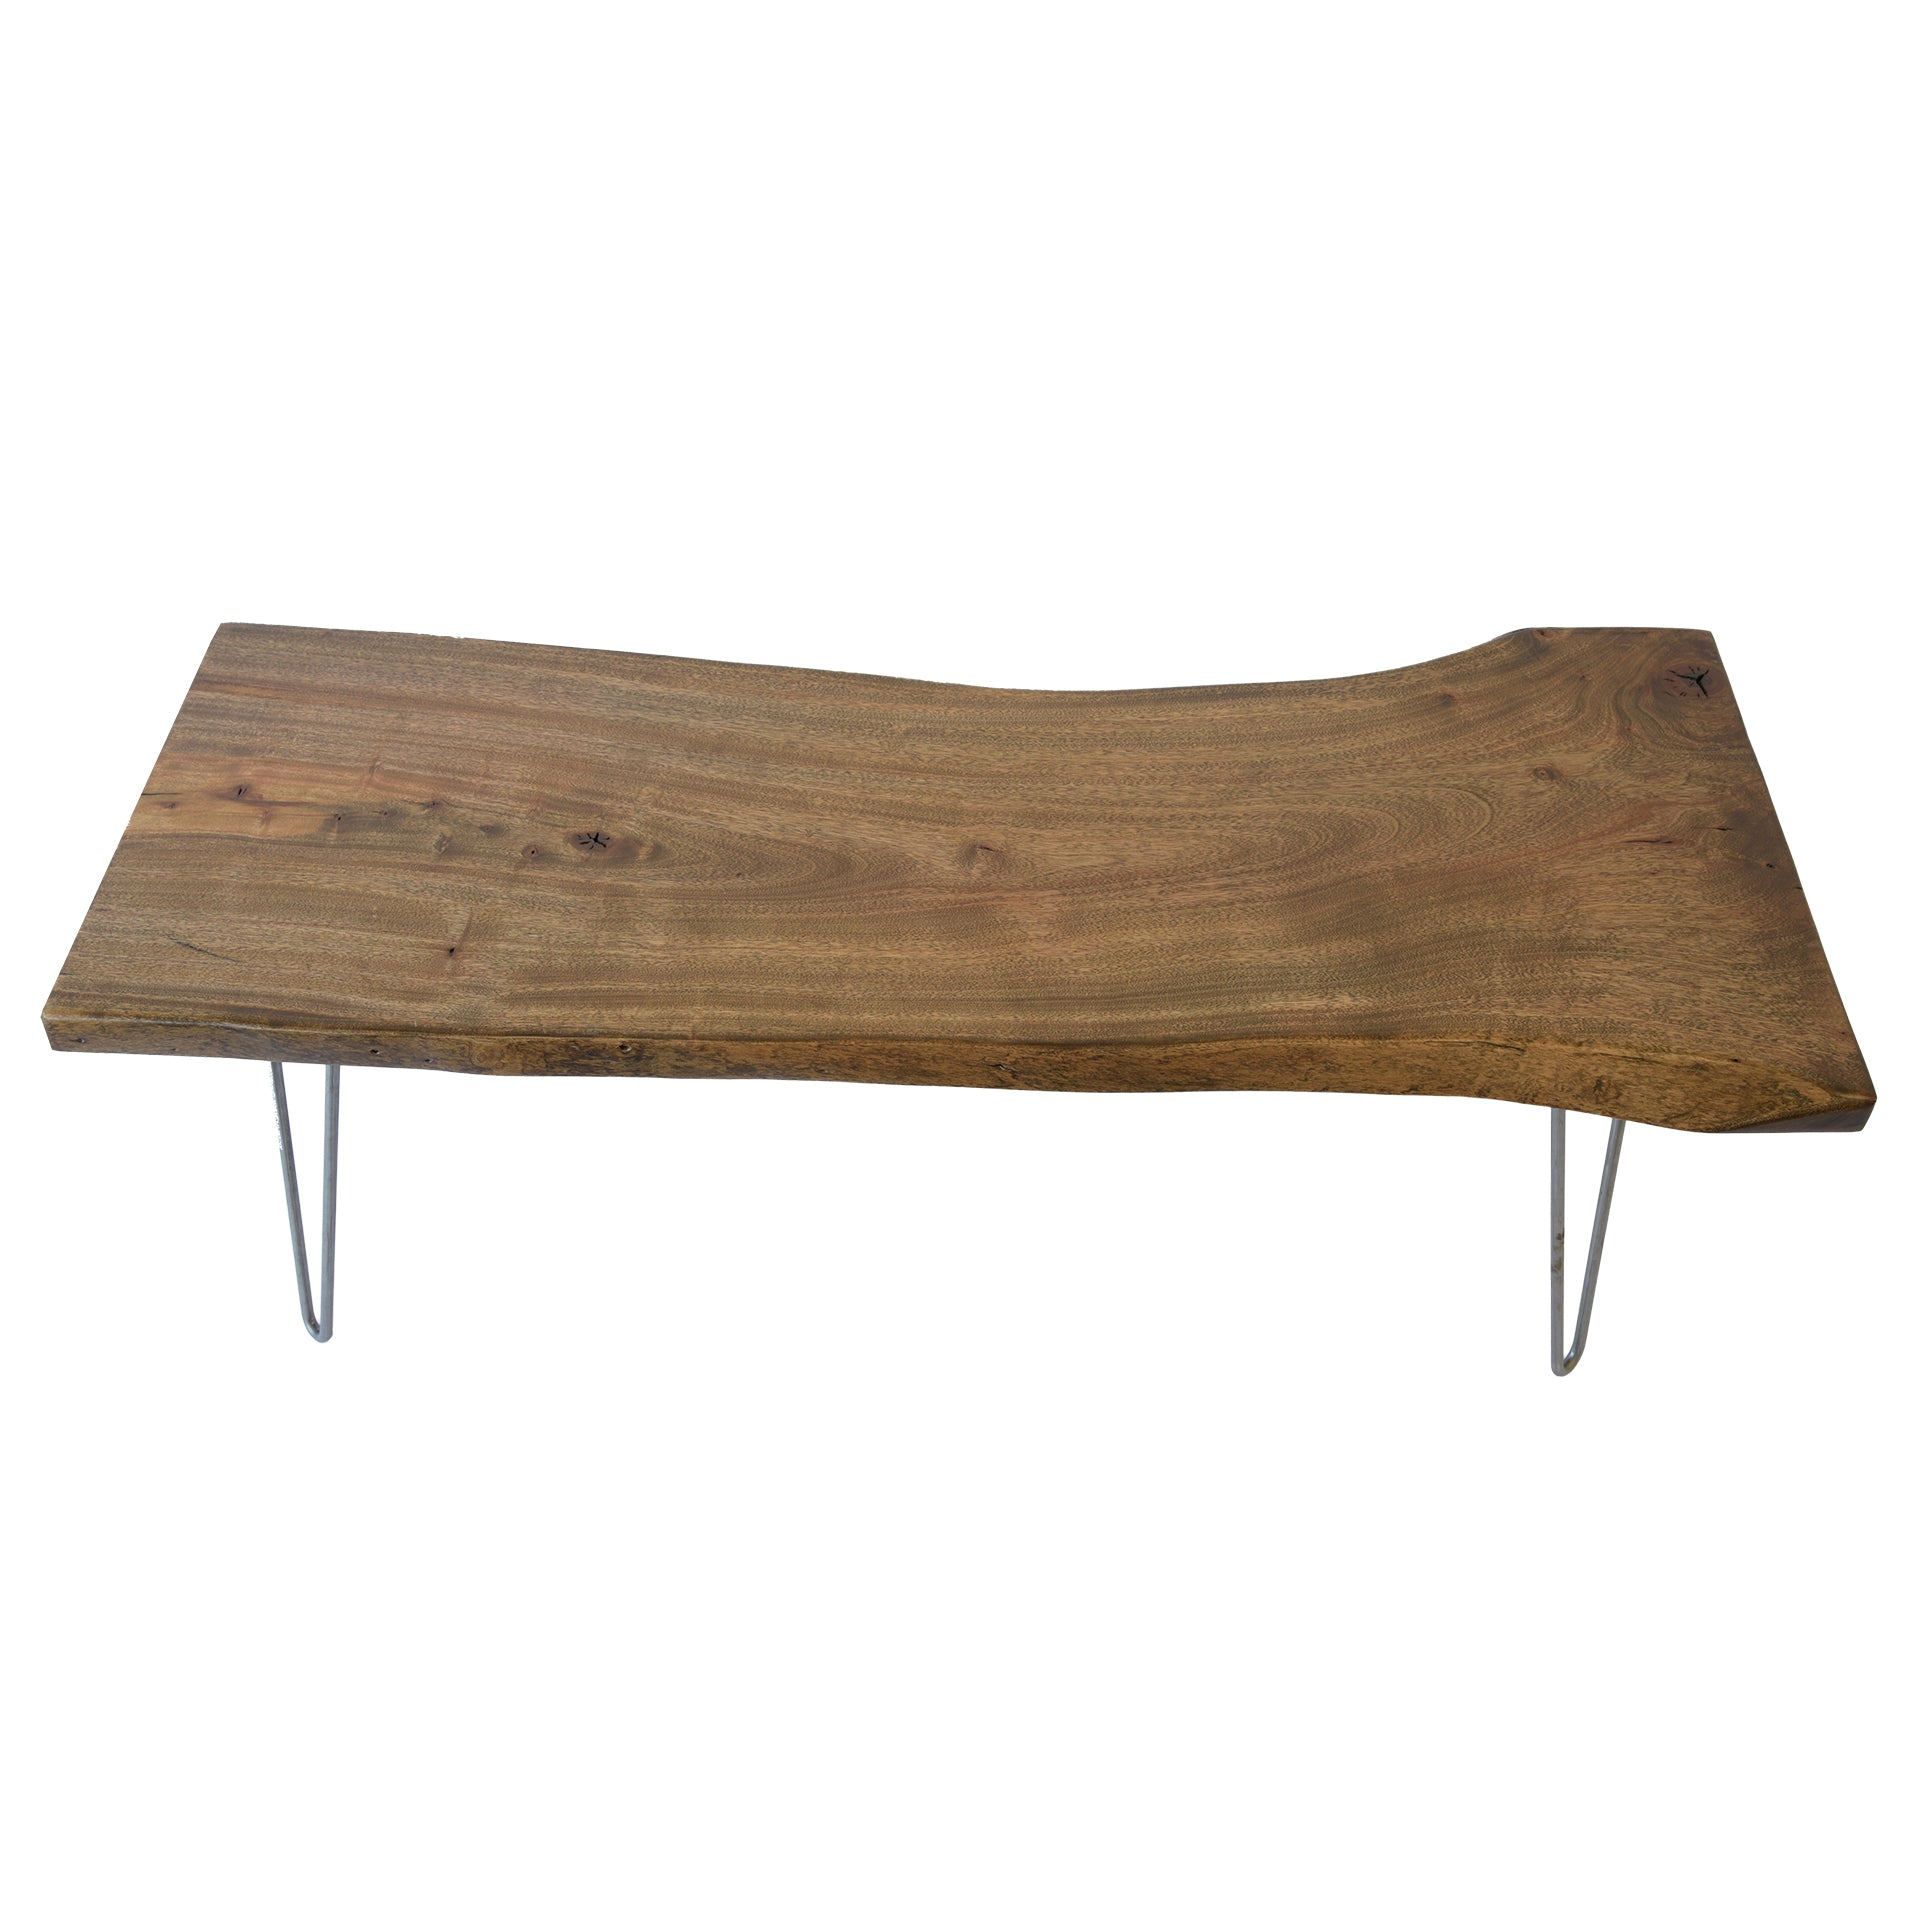 Rustic Handmade Wood Live Edge Slab Coffee Table